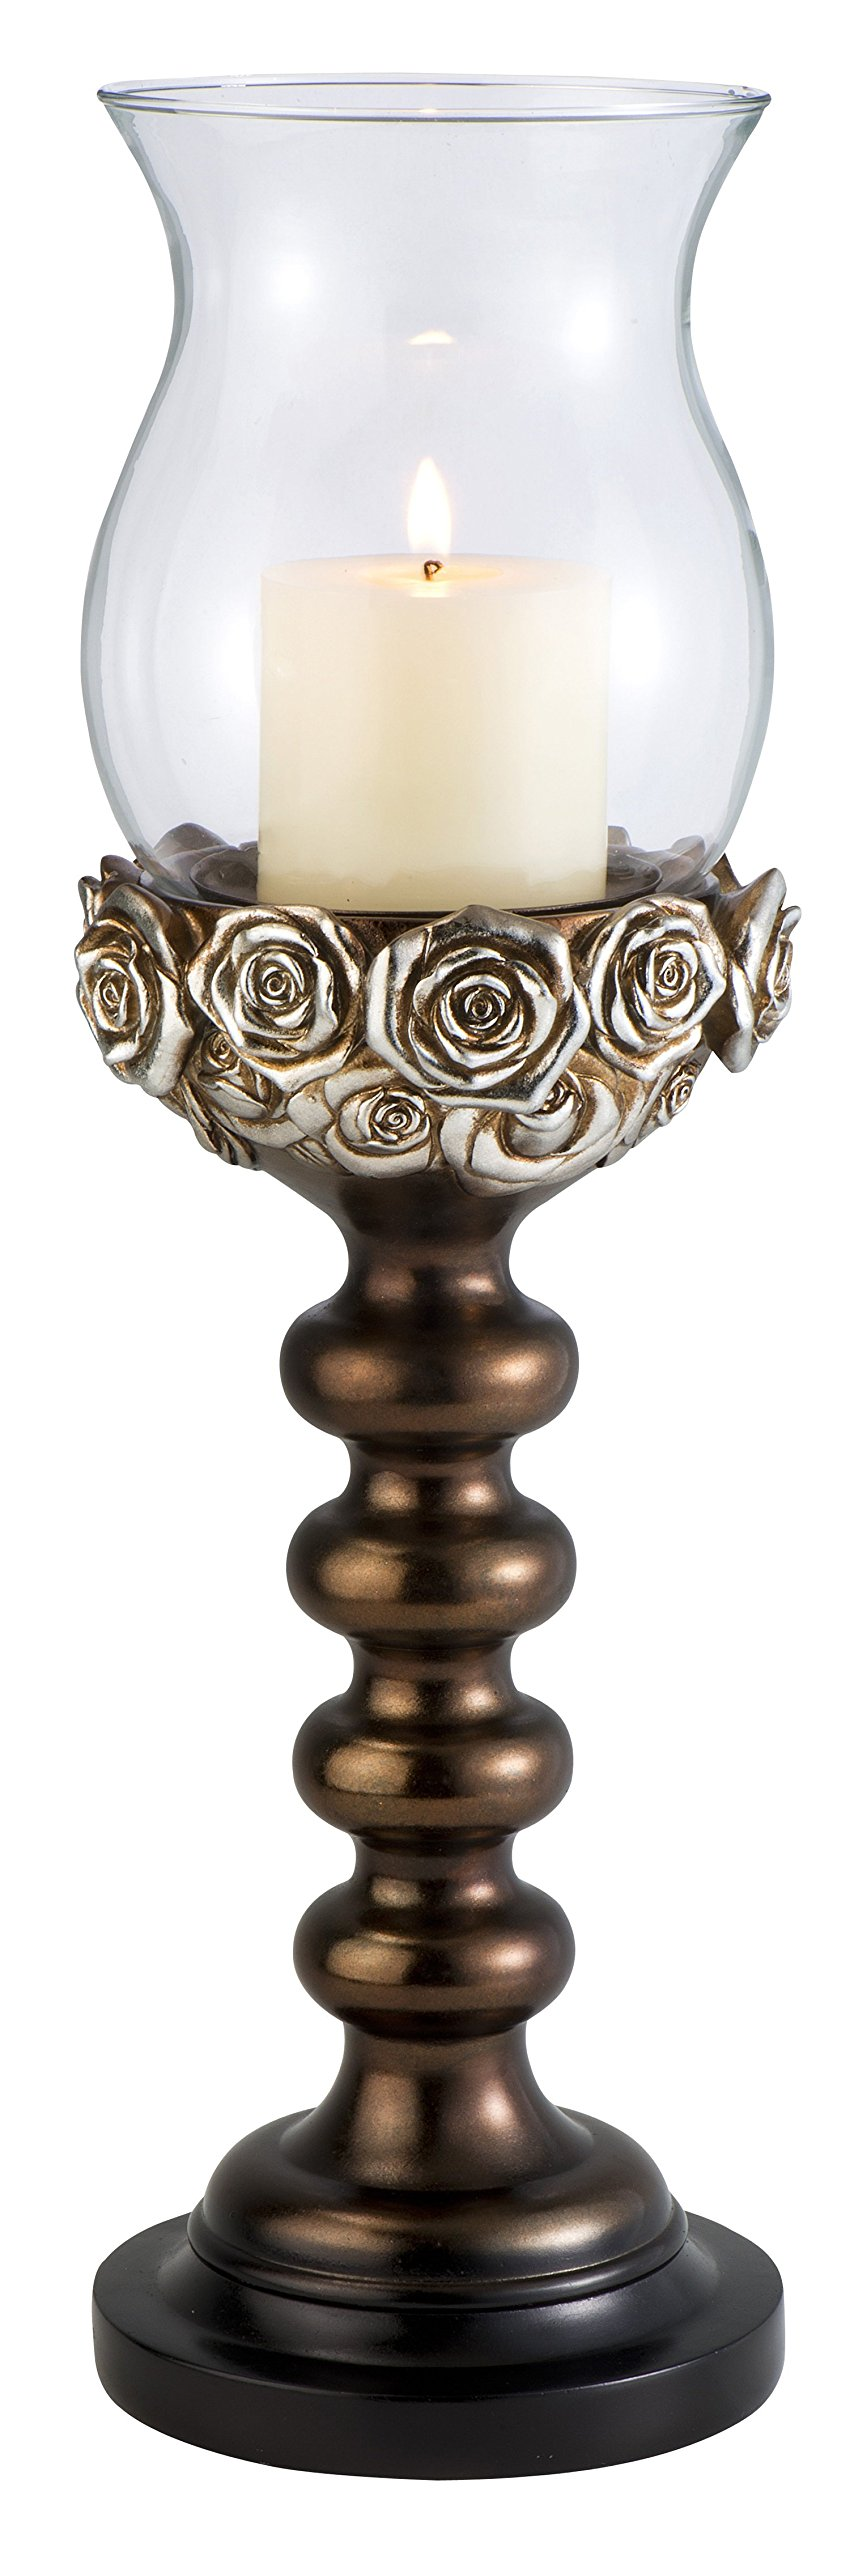 StealStreet SS-OL-OK-4275-C2 19.5 inch Allure Candle Holder